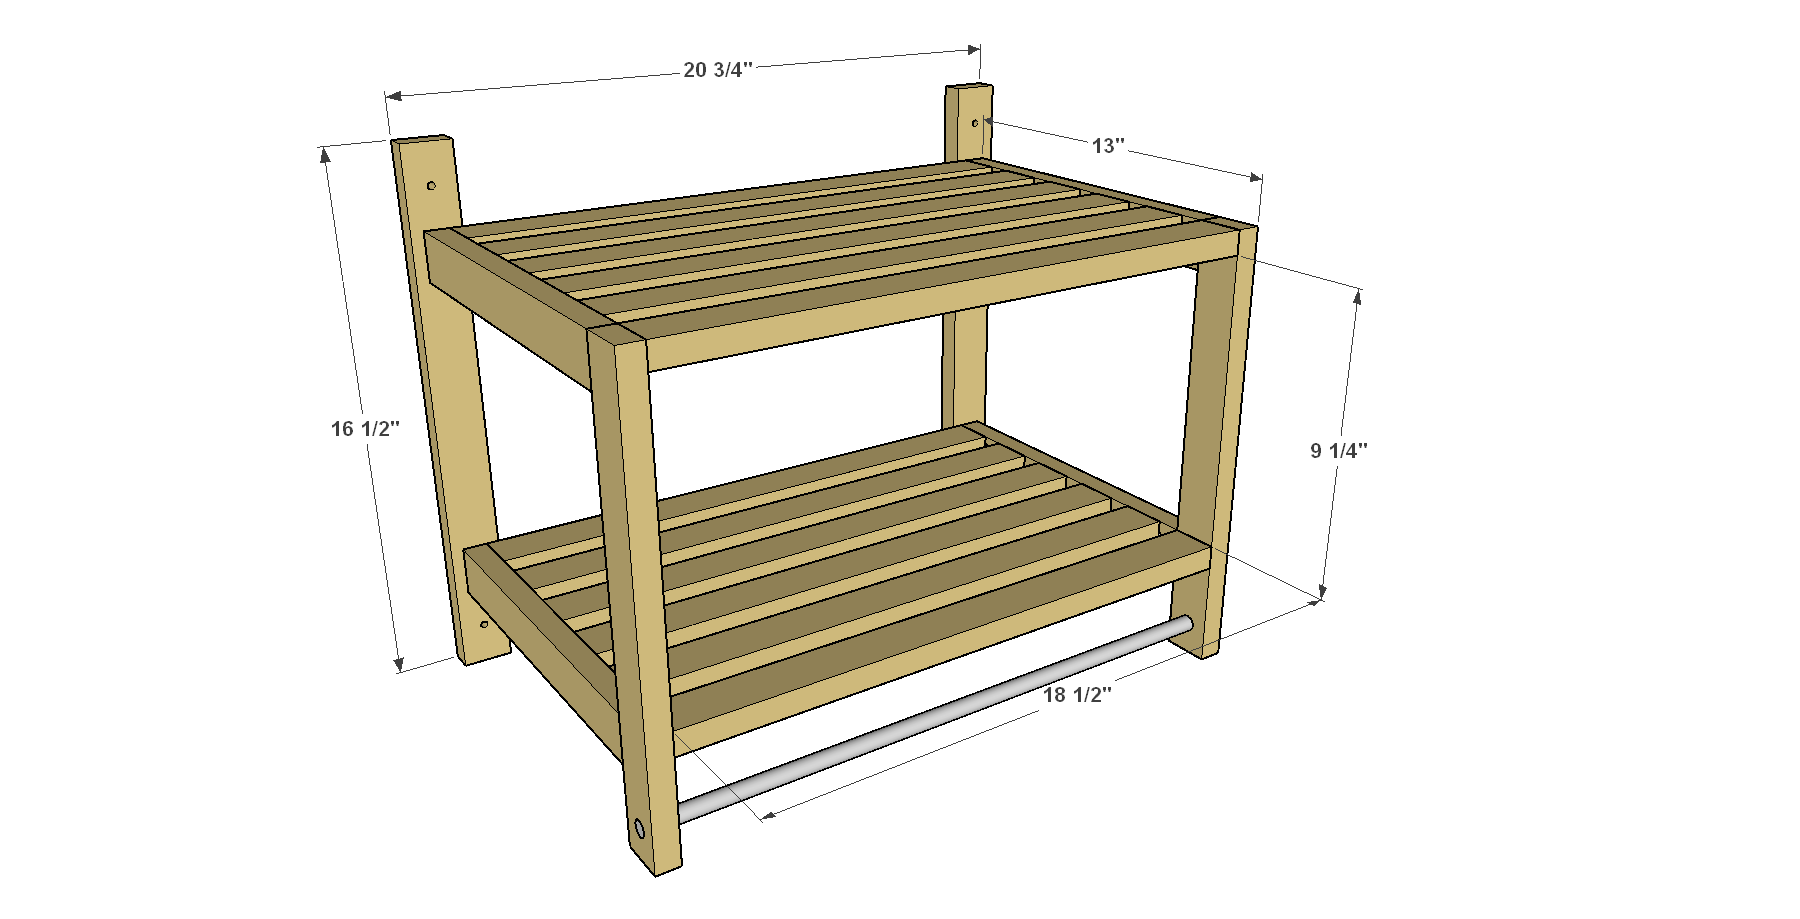 bathroom-wall-shelf-overall-with-dimensions